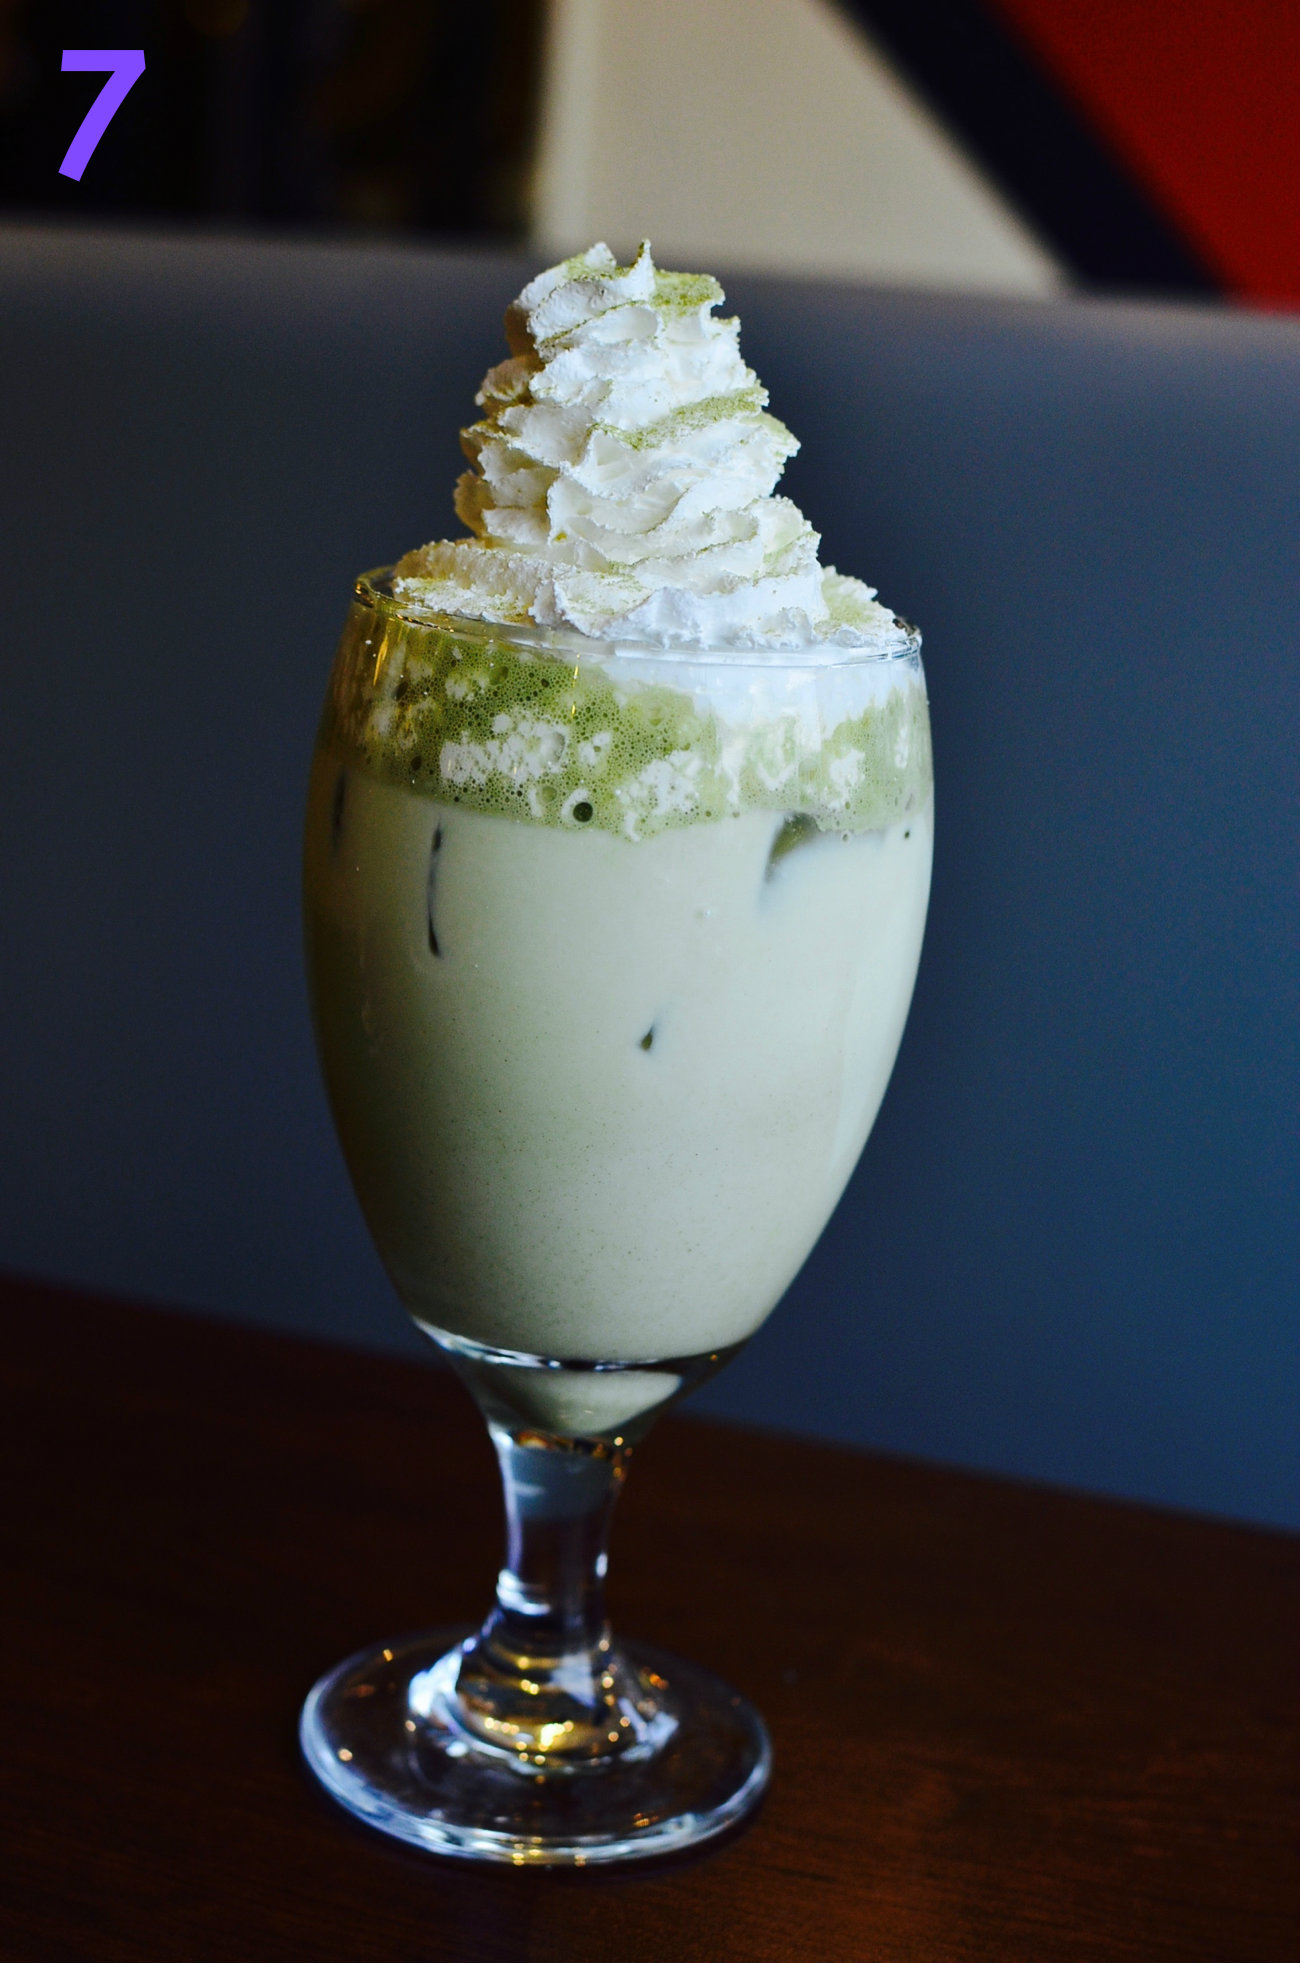 #7 - This delicious looking drink... It's called Milky Matcha (Japanese green tea and creamy milk). You can find it at Neuf Asian Eatery (709 Main St., 45202). / Image: Leah Zipperstein, Cincinnati Refined